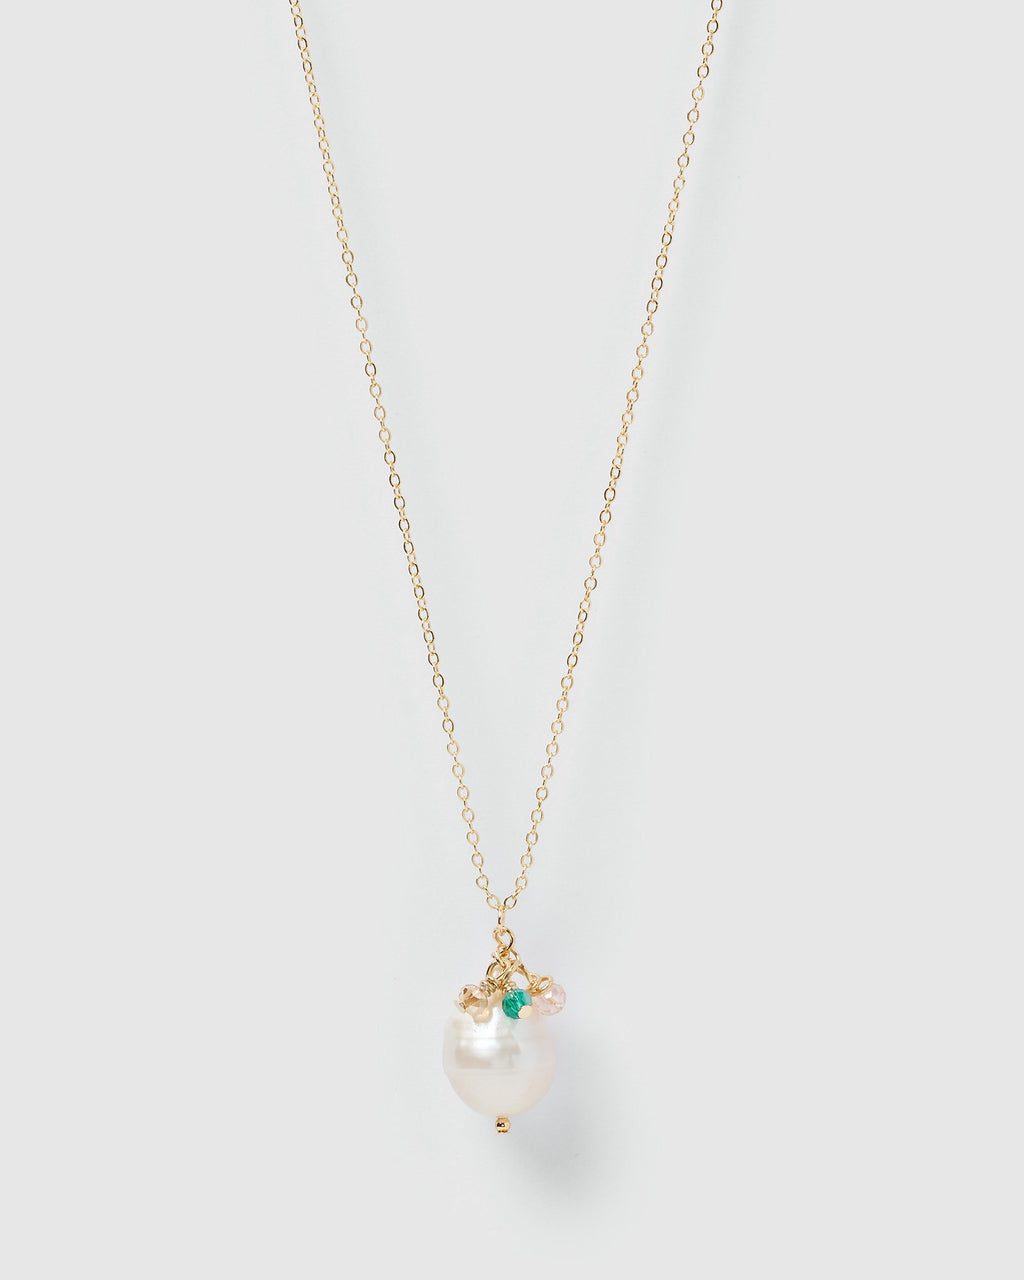 Miz Casa & Co Avalon Pearl Pendant Necklace With Beads Gold Pearl